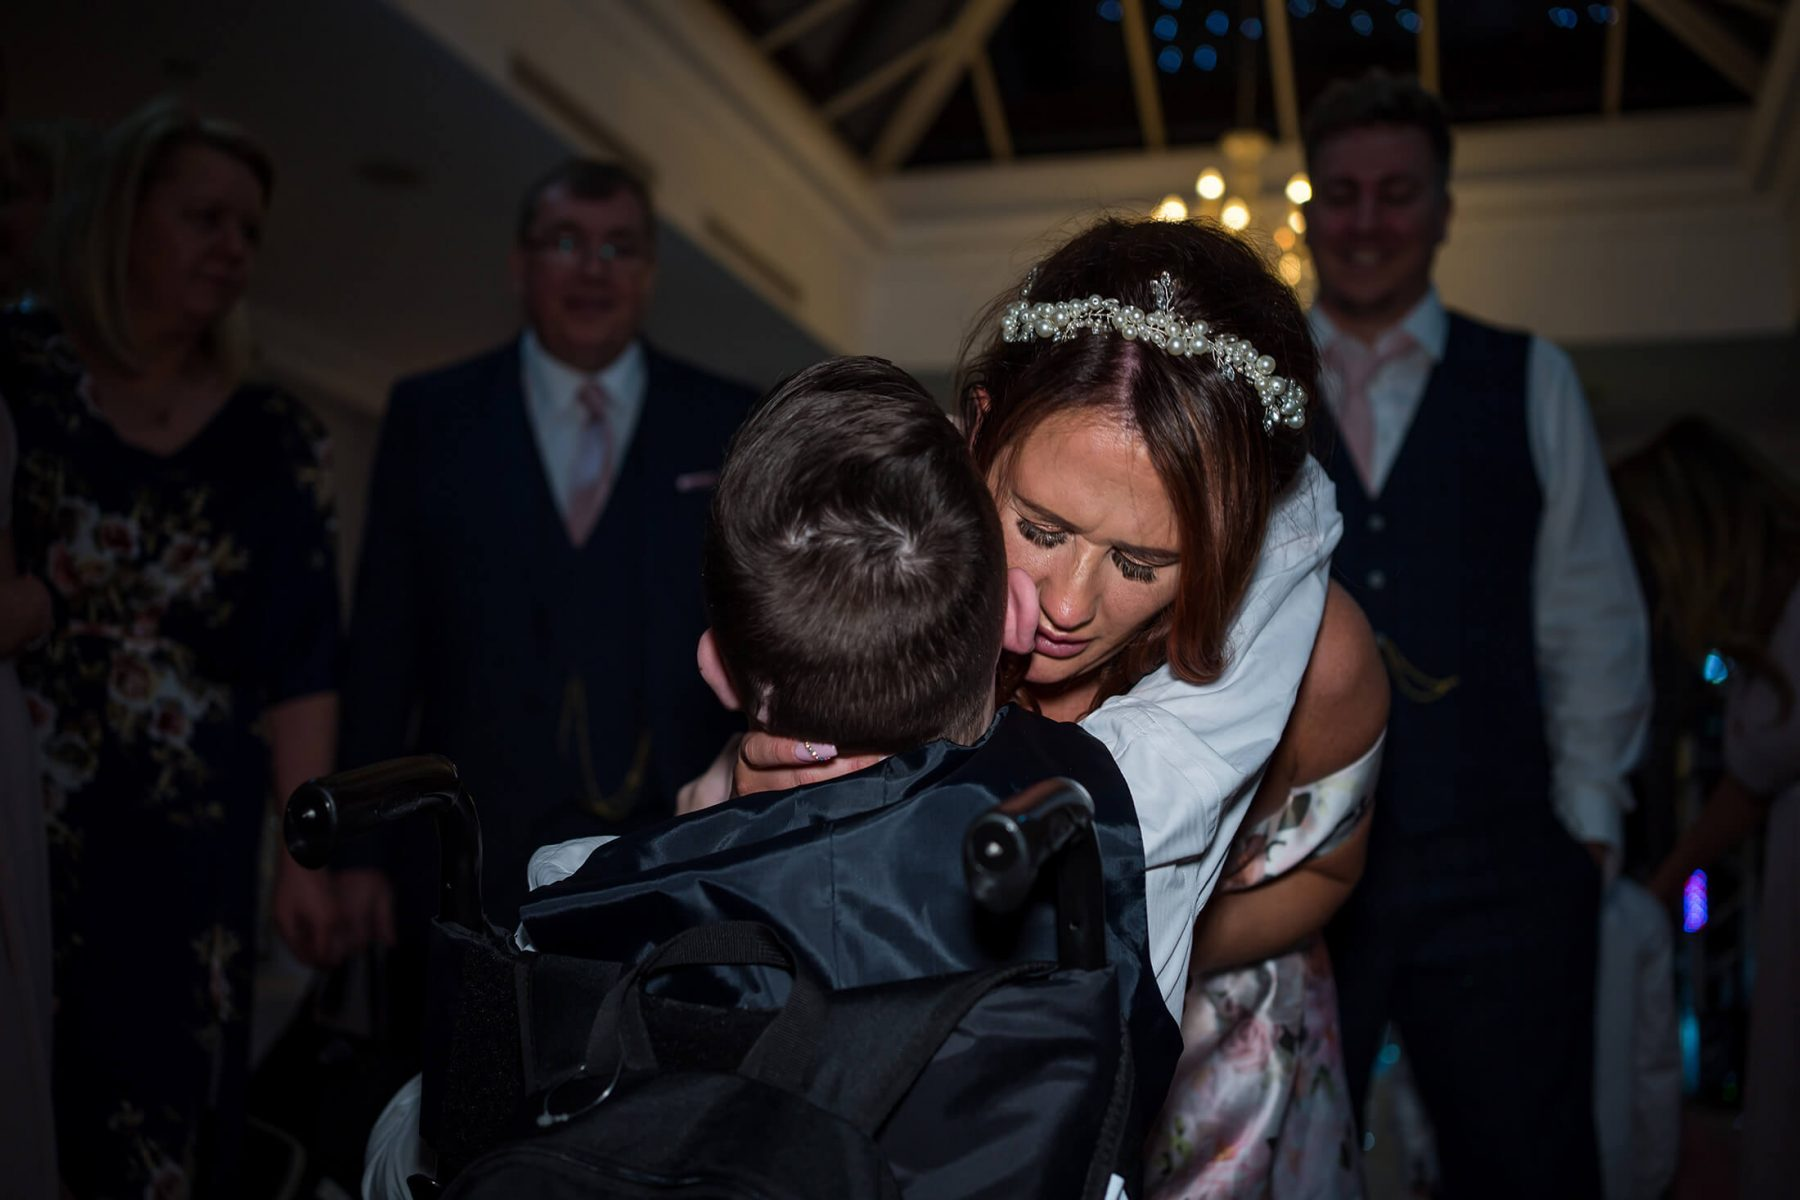 Hollin Hall Hotel Wedding Photographer - The bride hugs her son